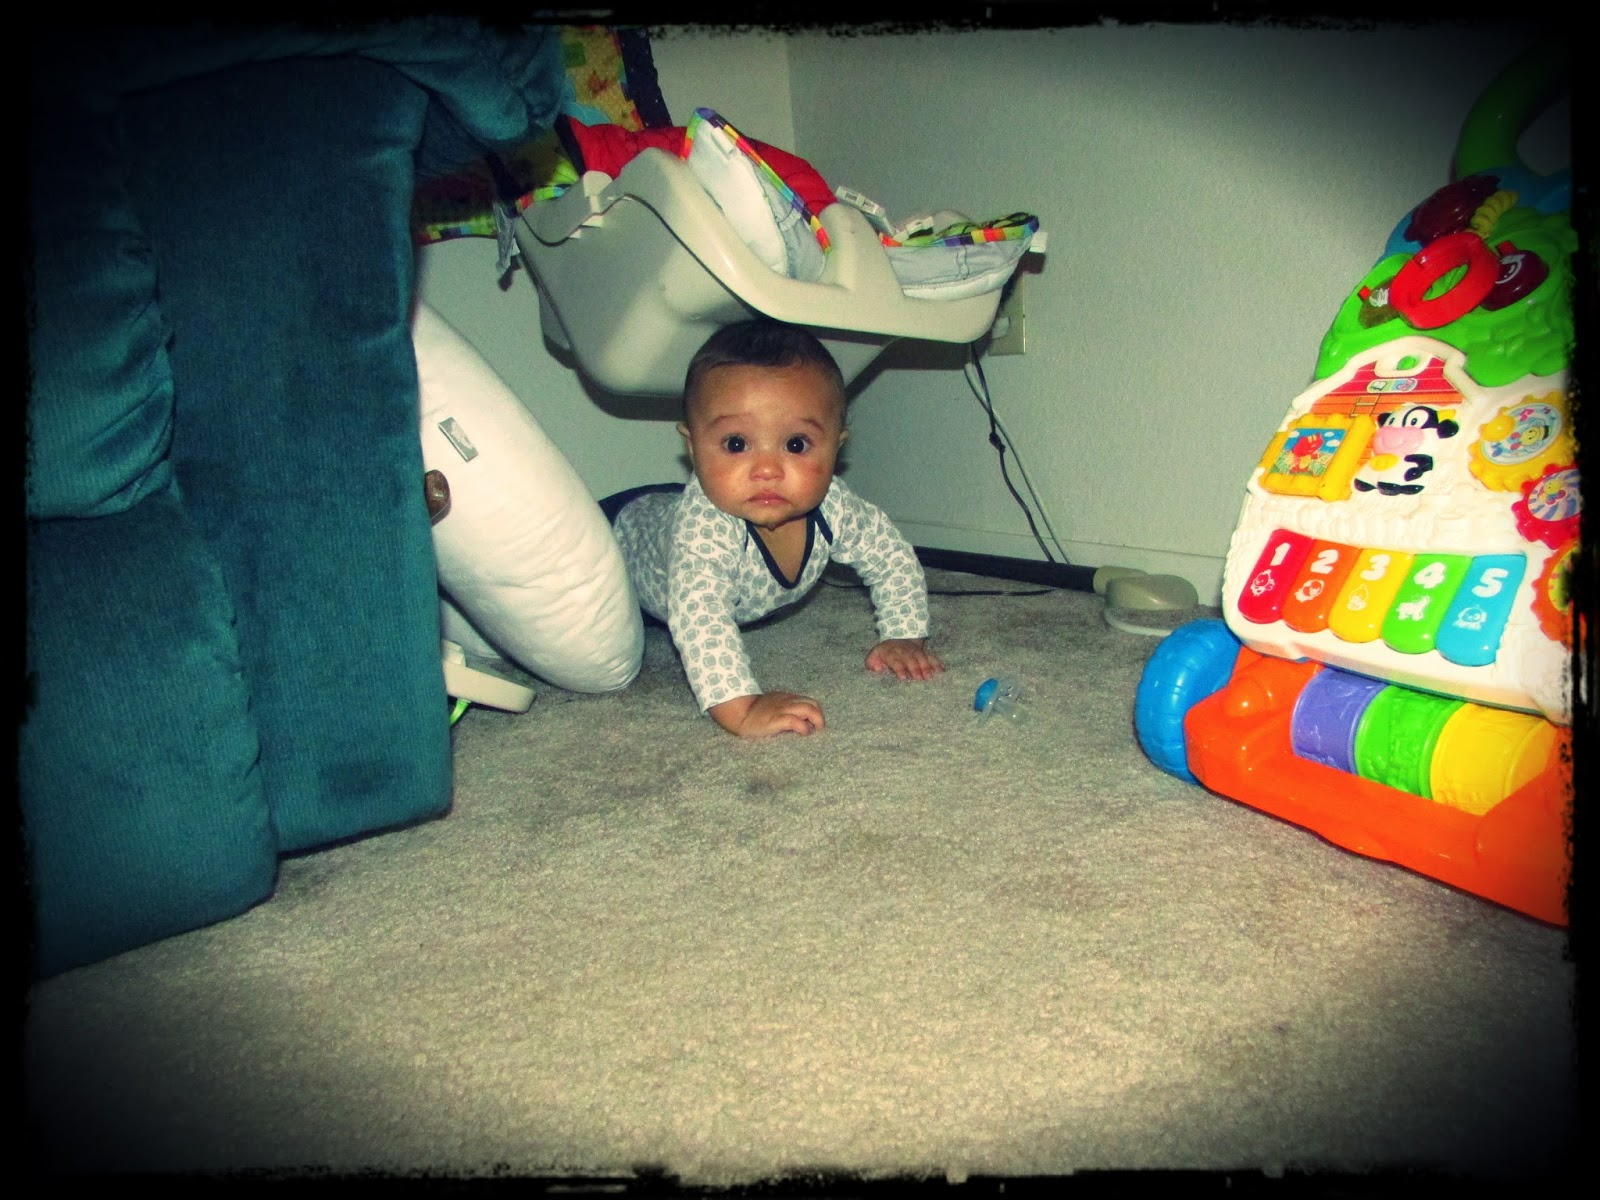 Crawled himself right into the corner!